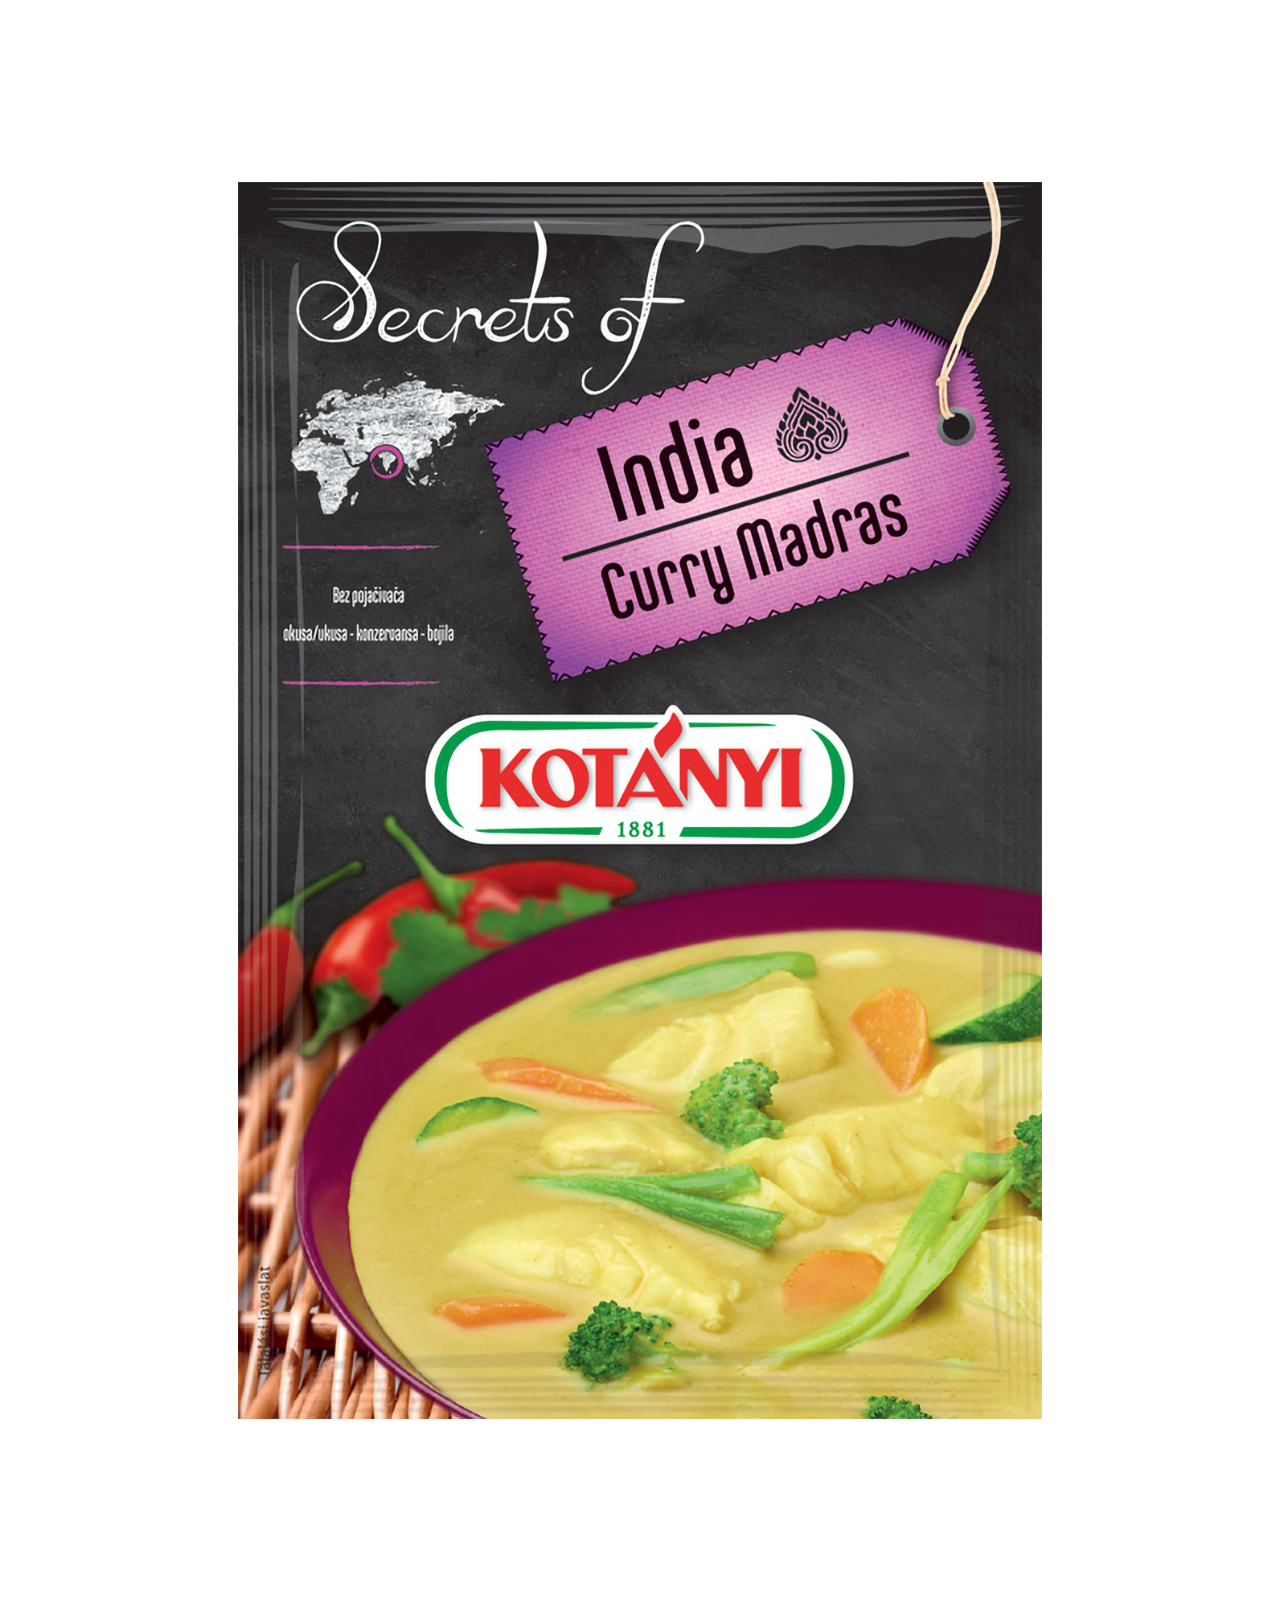 355008 Kotanyi Secrets Of India Curry Madras B2c Pouch